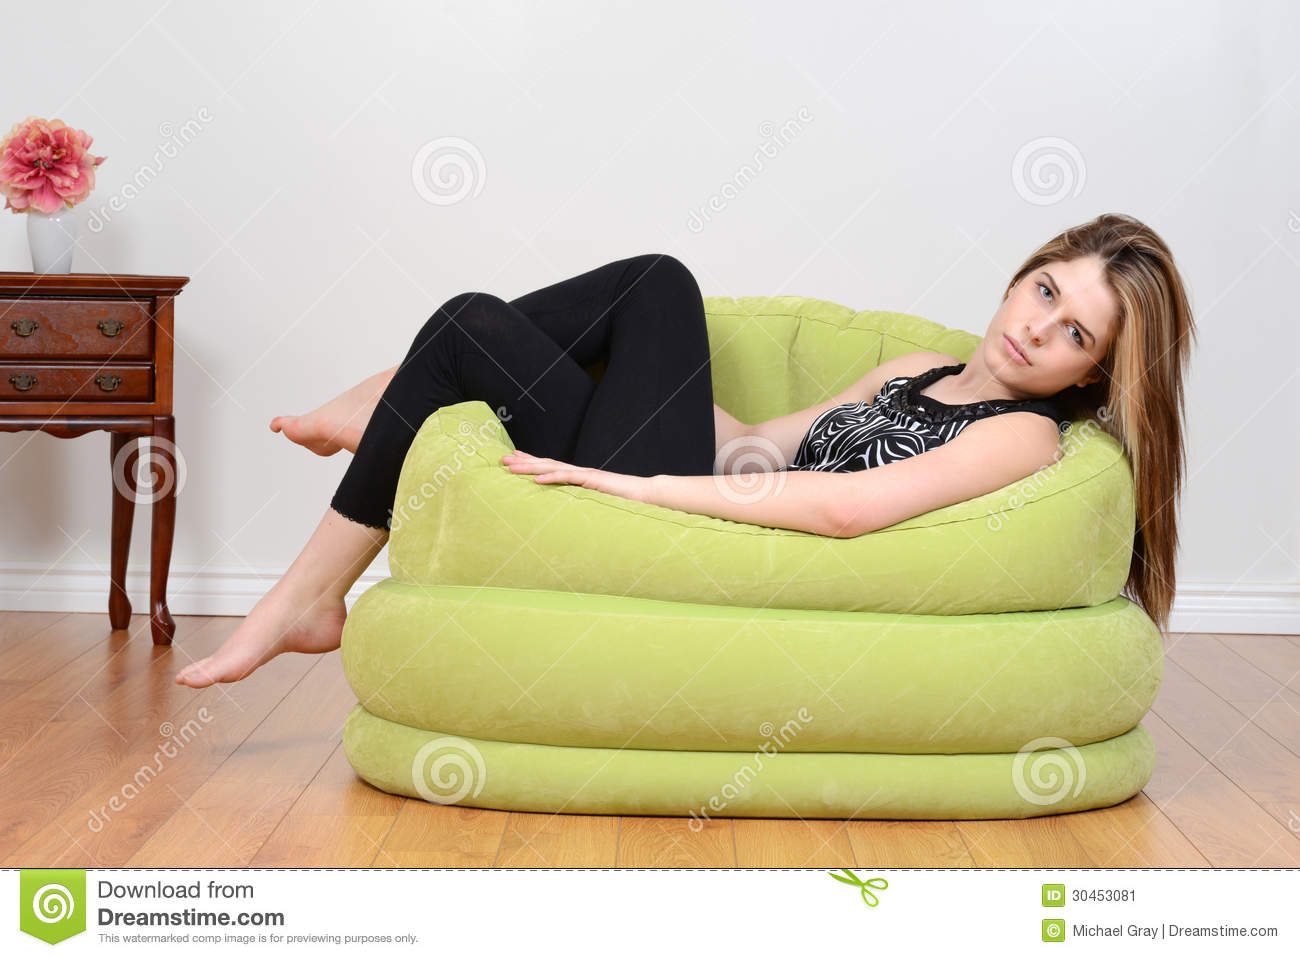 Teen Relaxing In Green Bean Bag Chair